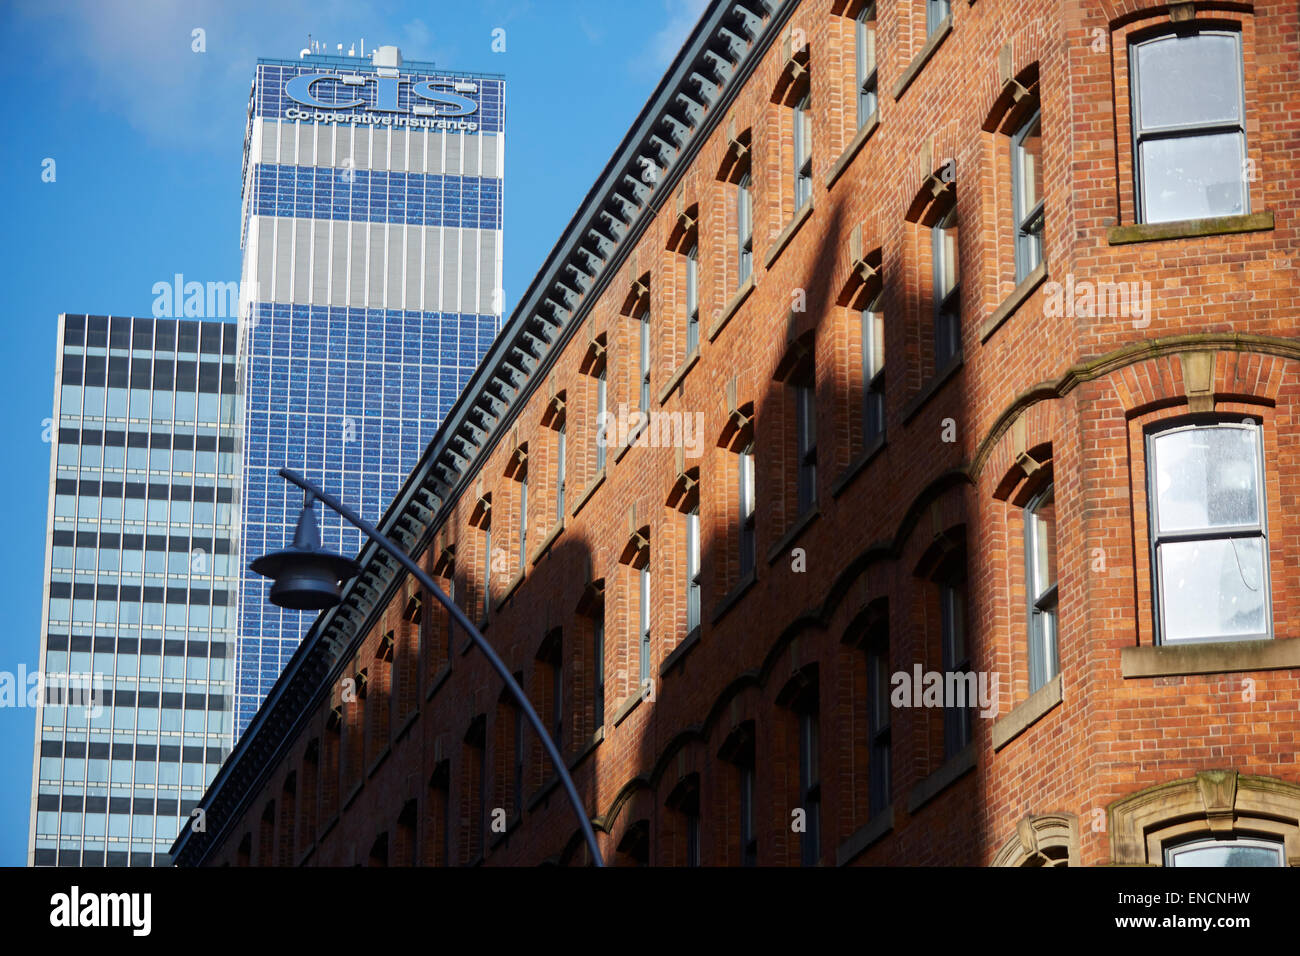 CIS tower Co-operative insurance offices - Stock Image